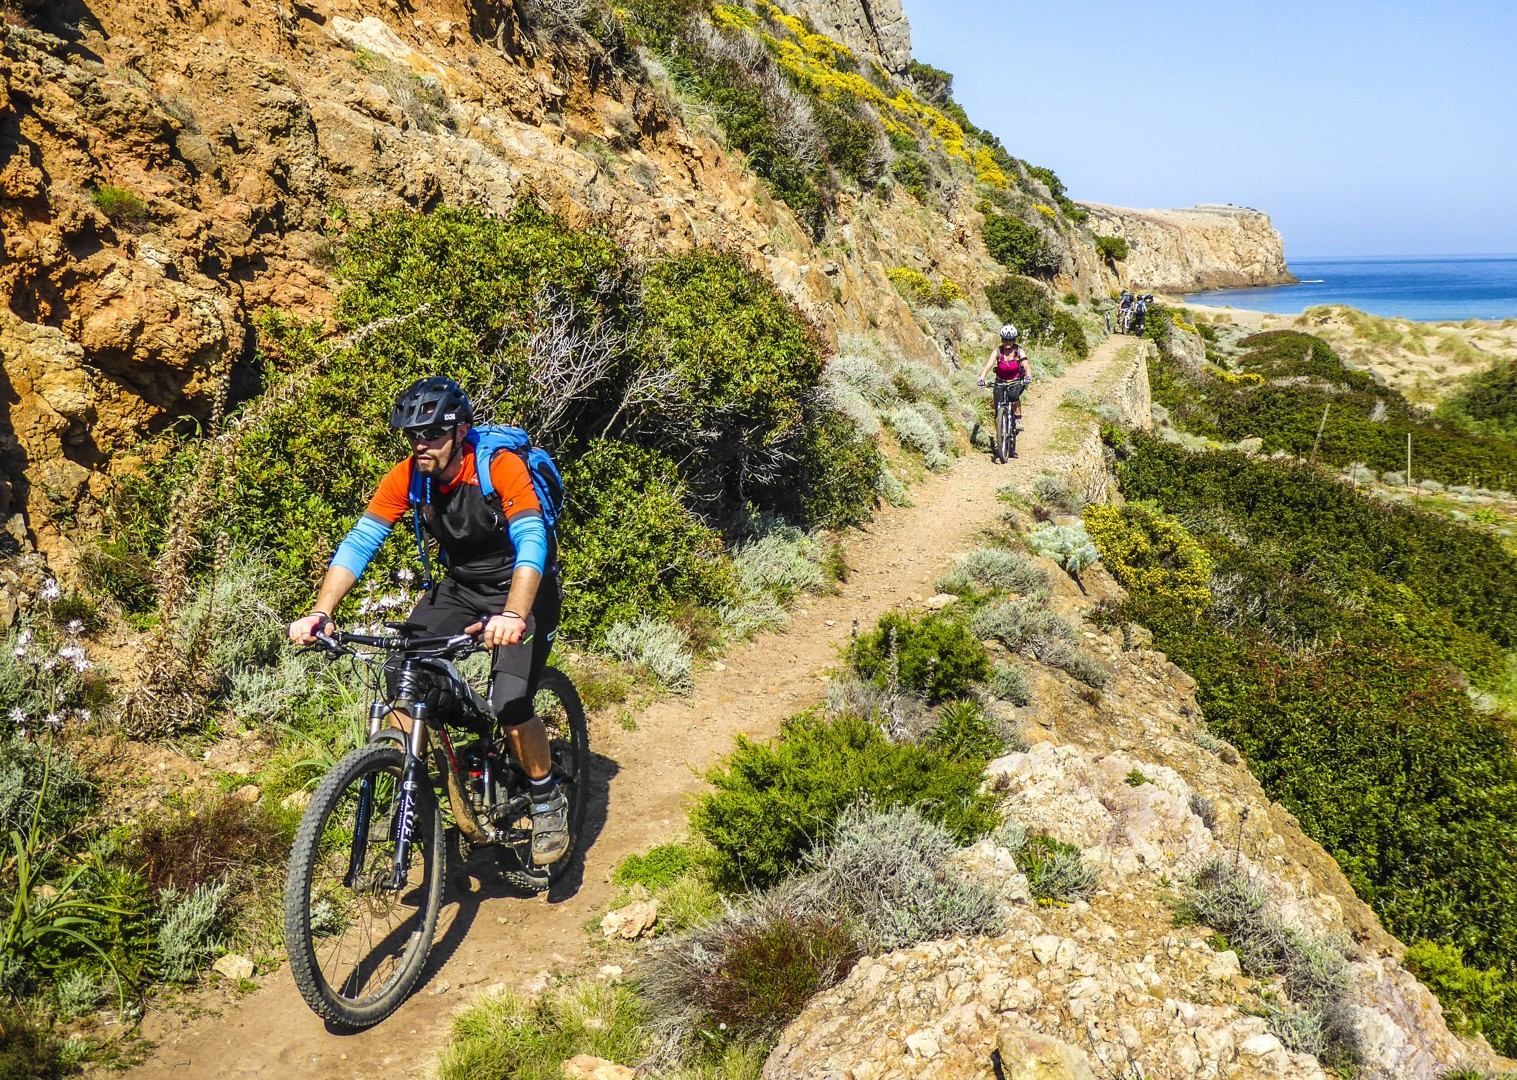 gennargentu-sud-cala-domestica-sardinia-mountain-biking-tour.jpg - Italy - Sardinia - Coast to Coast - Self-Guided Mountain Bike Holiday - Mountain Biking